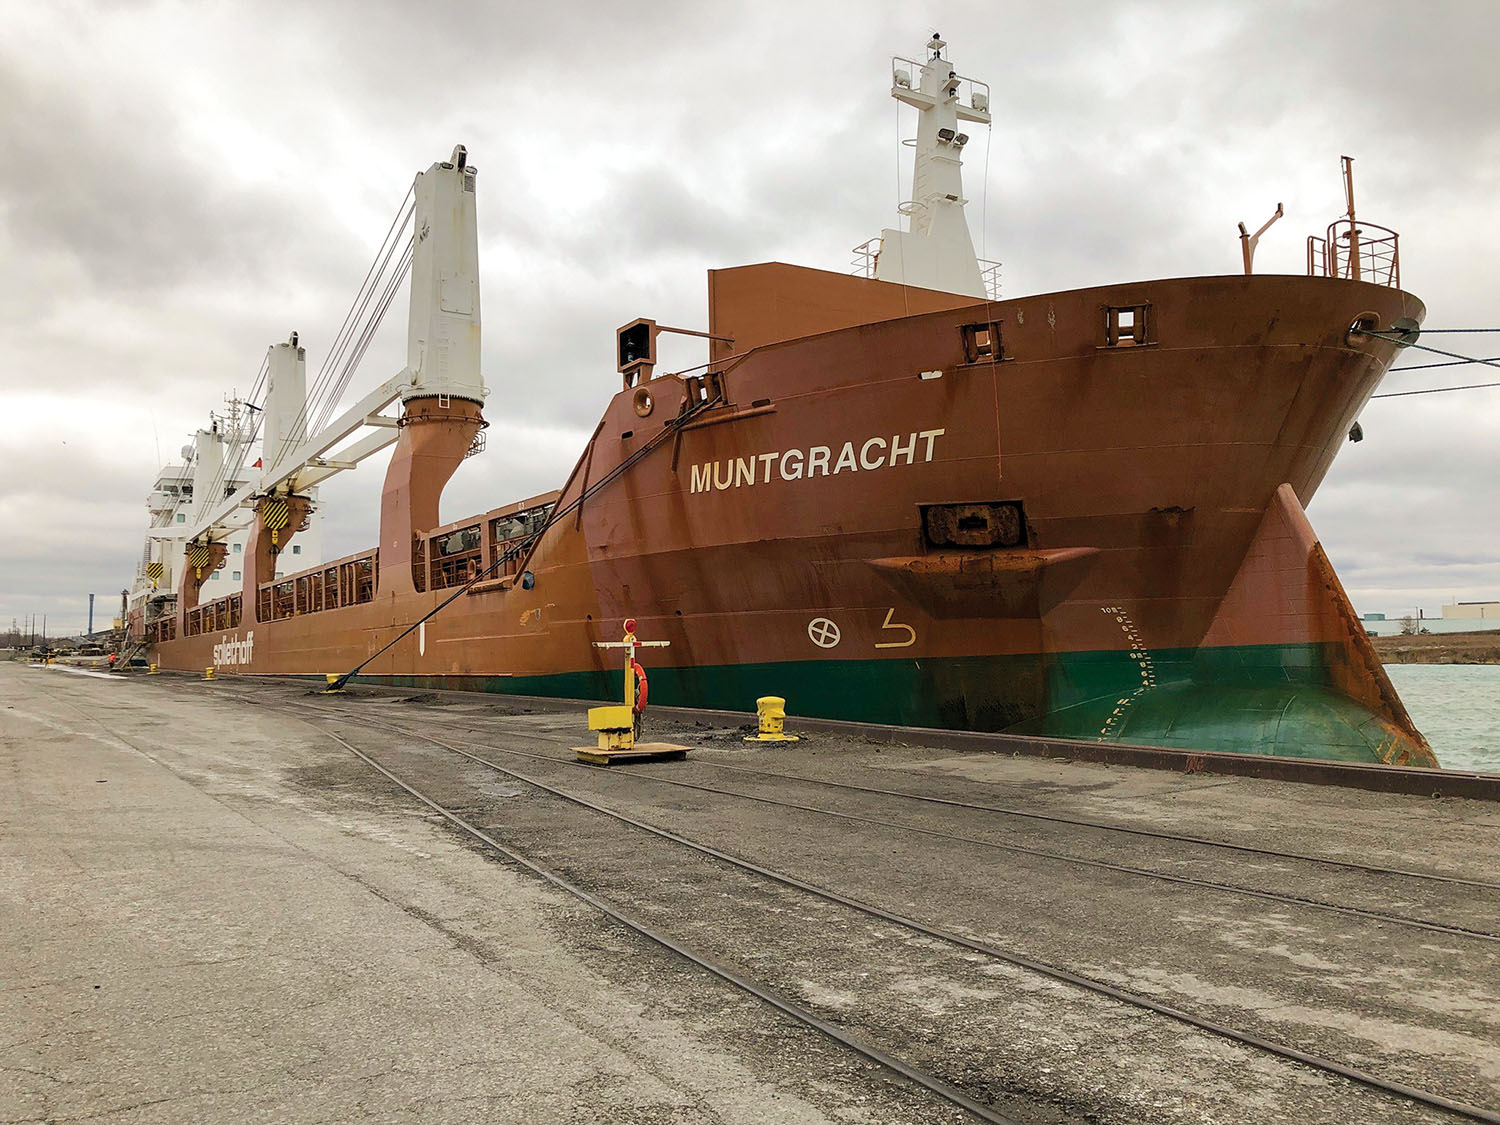 The mv. Muntgracht delivered 1,650 tons of wind turbine hubs and nacelles from Spain to the Port of Indiana-Burns Harbor. (Photo courtesy of Ports of Indiana)